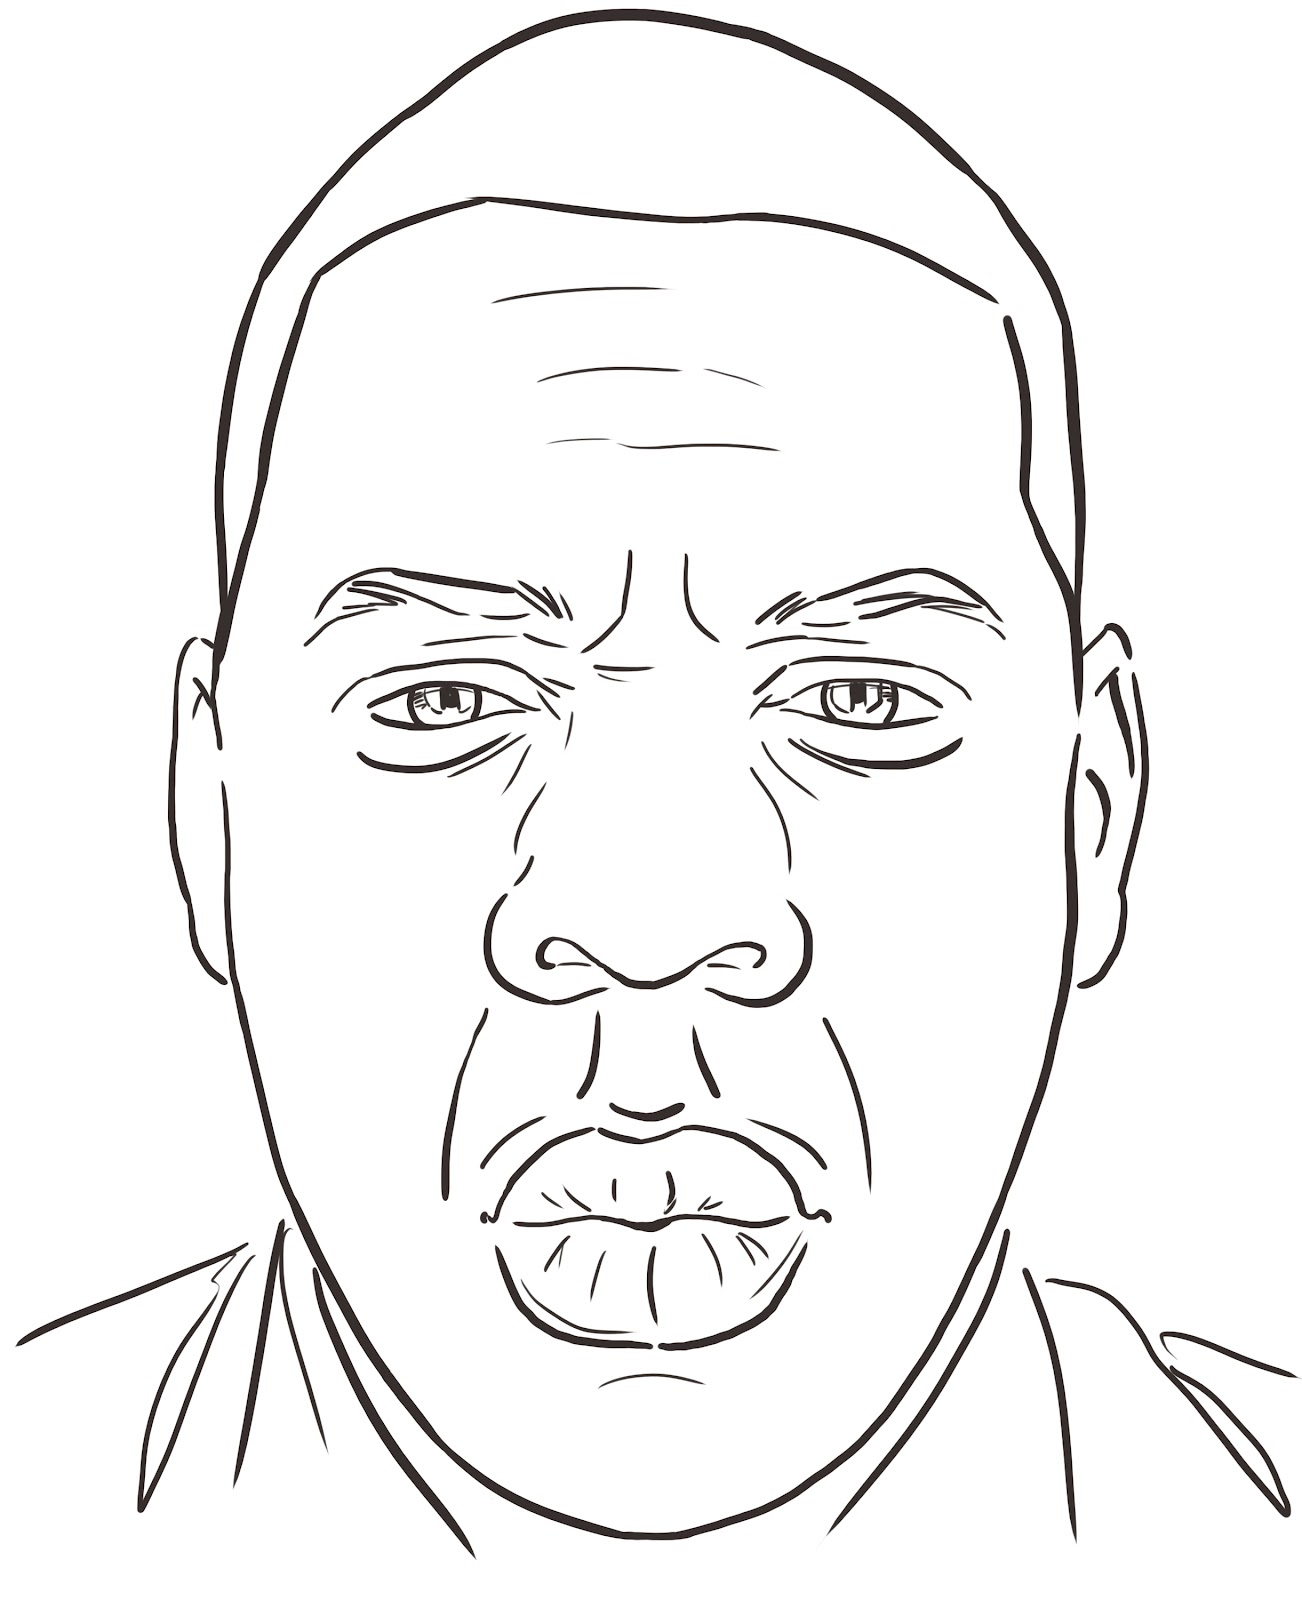 jay z coloring pages - photo#7